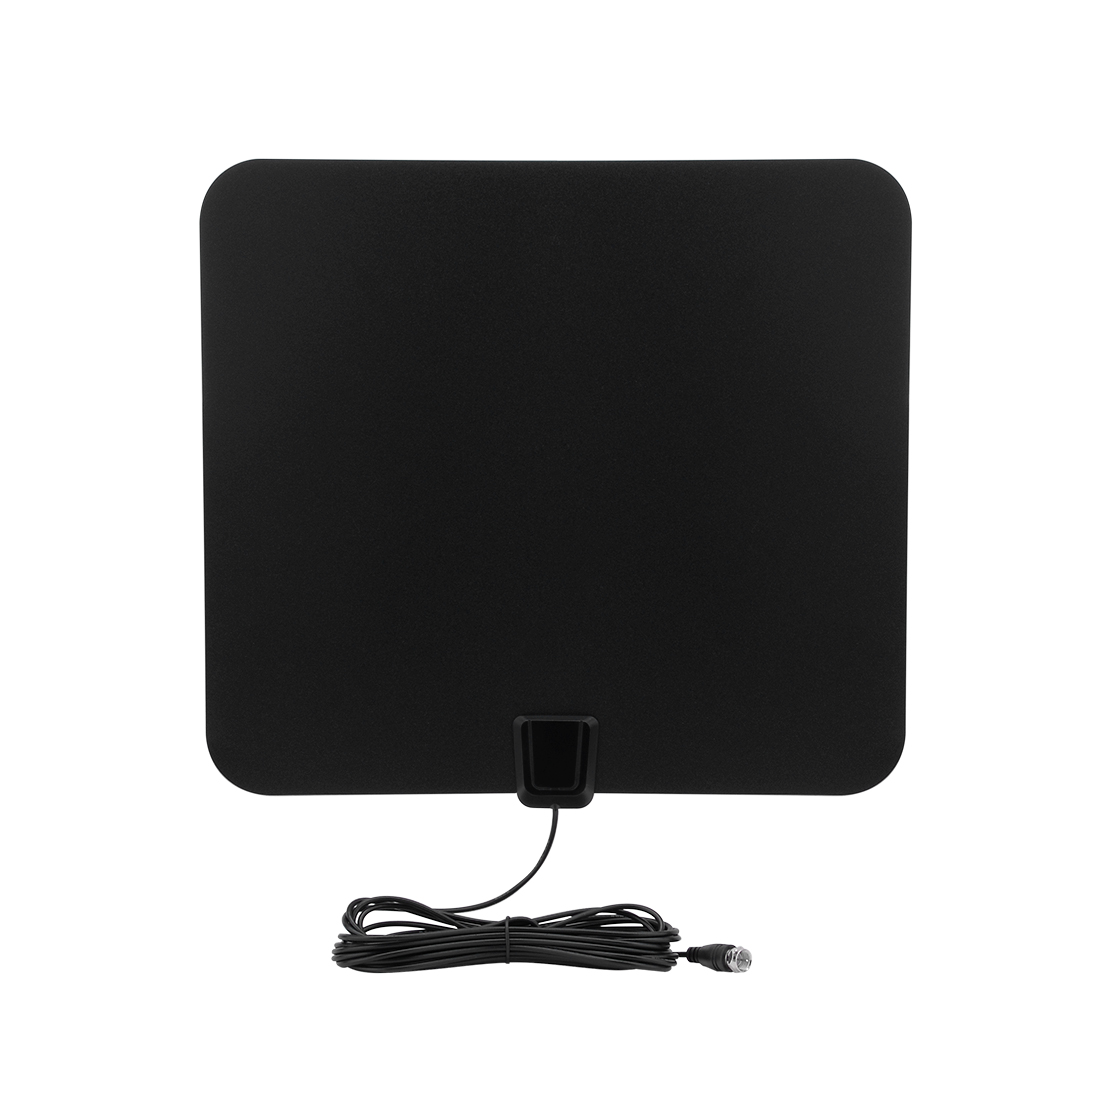 Indoor Amplified HDTV Antenna - 35 Miles Digital TV Antennas with 16 FT Long Cable